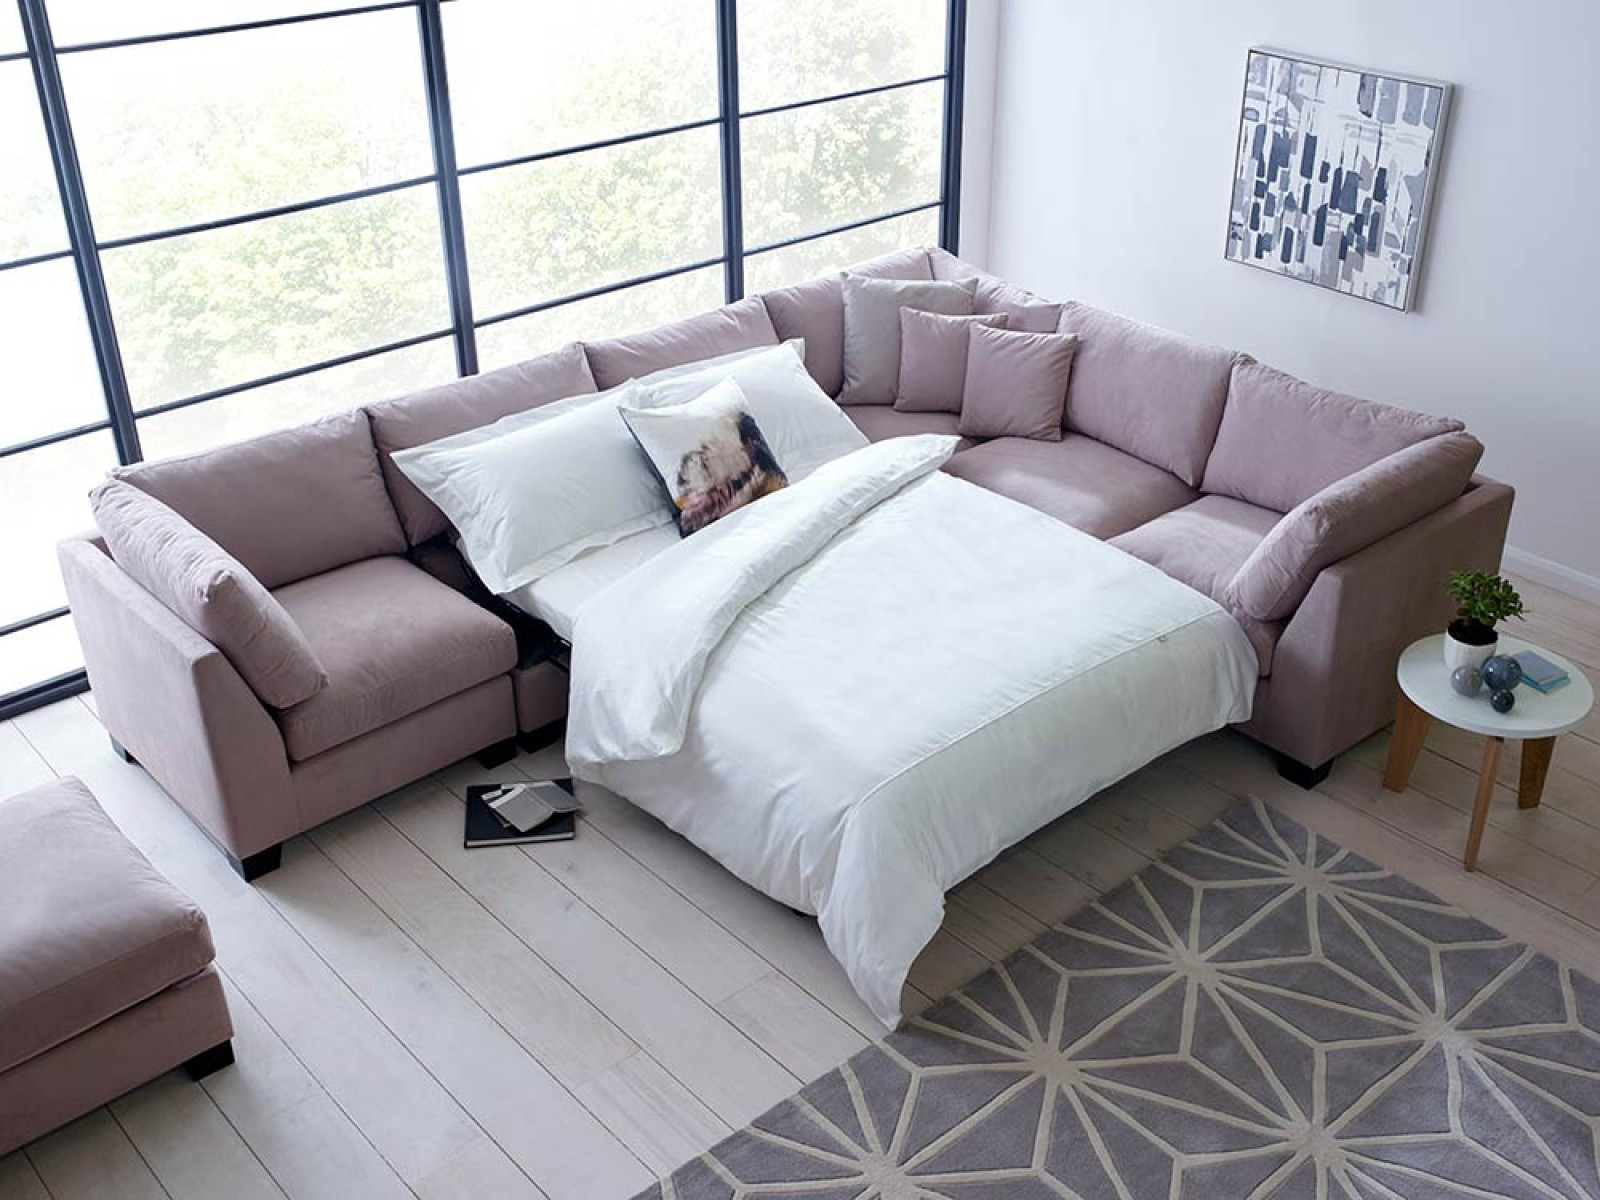 Best ideas about Sofa Bed Sectional . Save or Pin Isabelle Corner Sofa Bed Sectional Now.